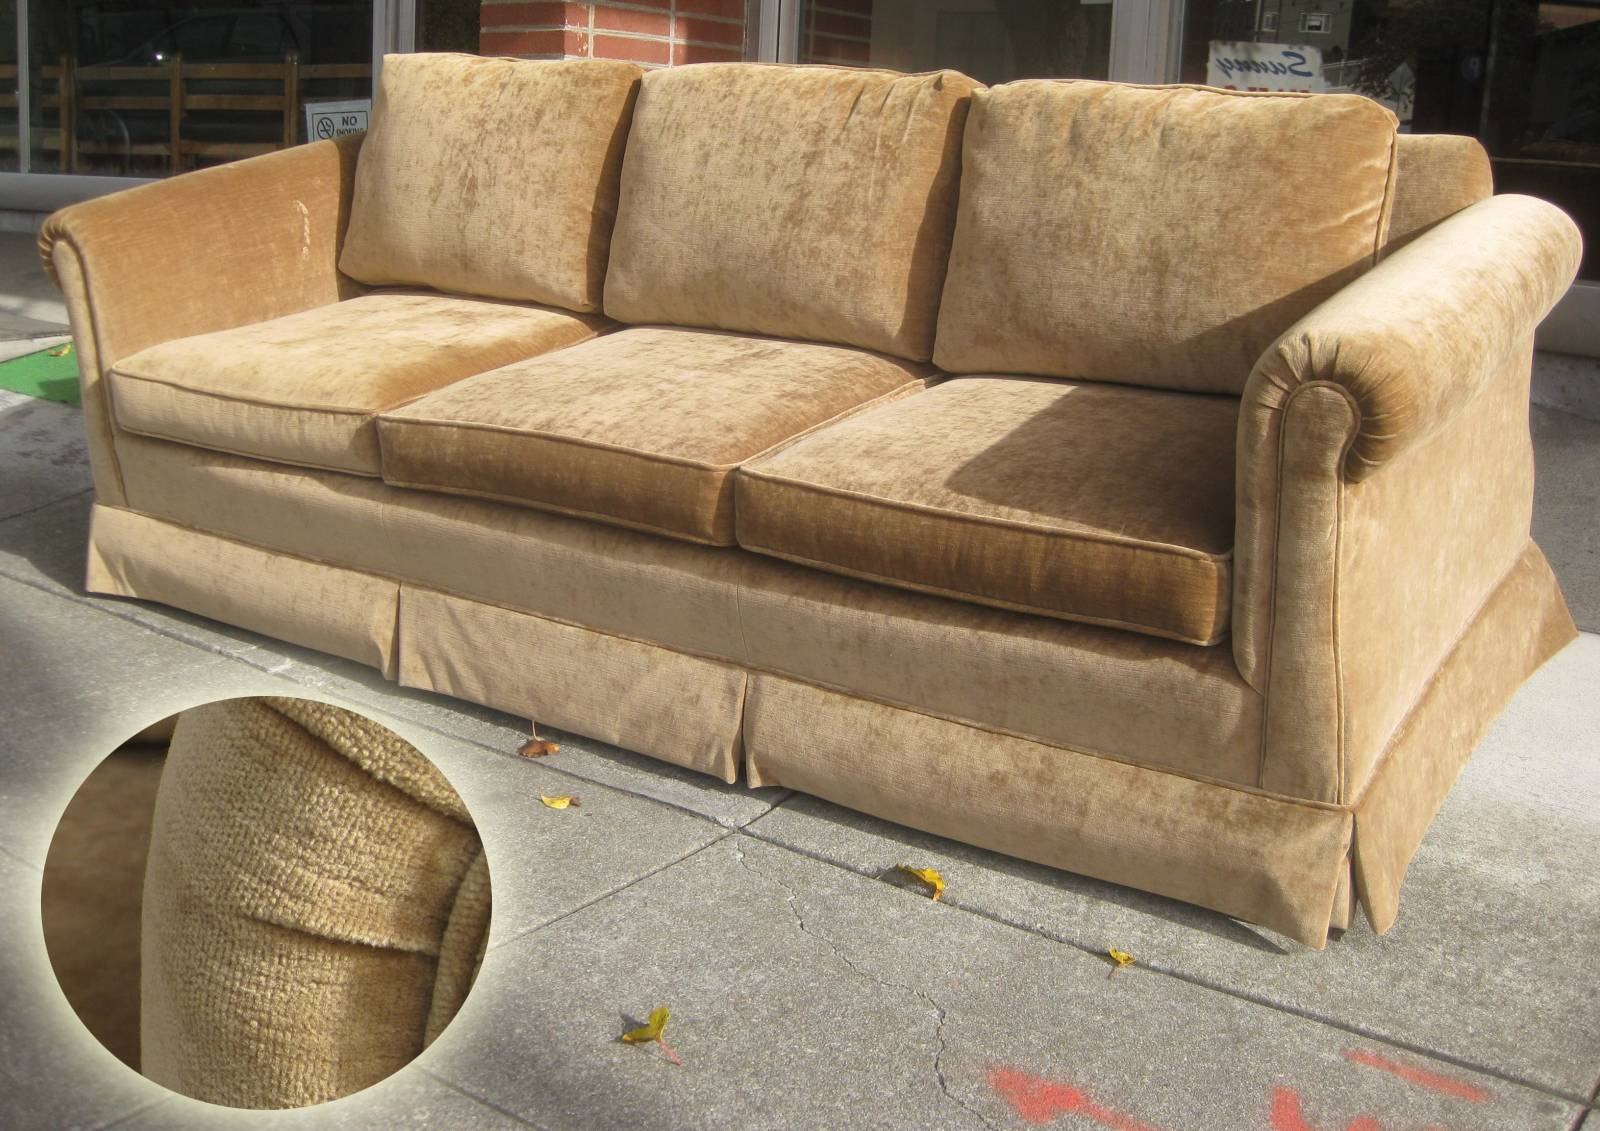 Uhuru Furniture & Collectibles: Sold - Brown Velvet Sofa And Chair within Brown Velvet Sofas (Image 13 of 15)